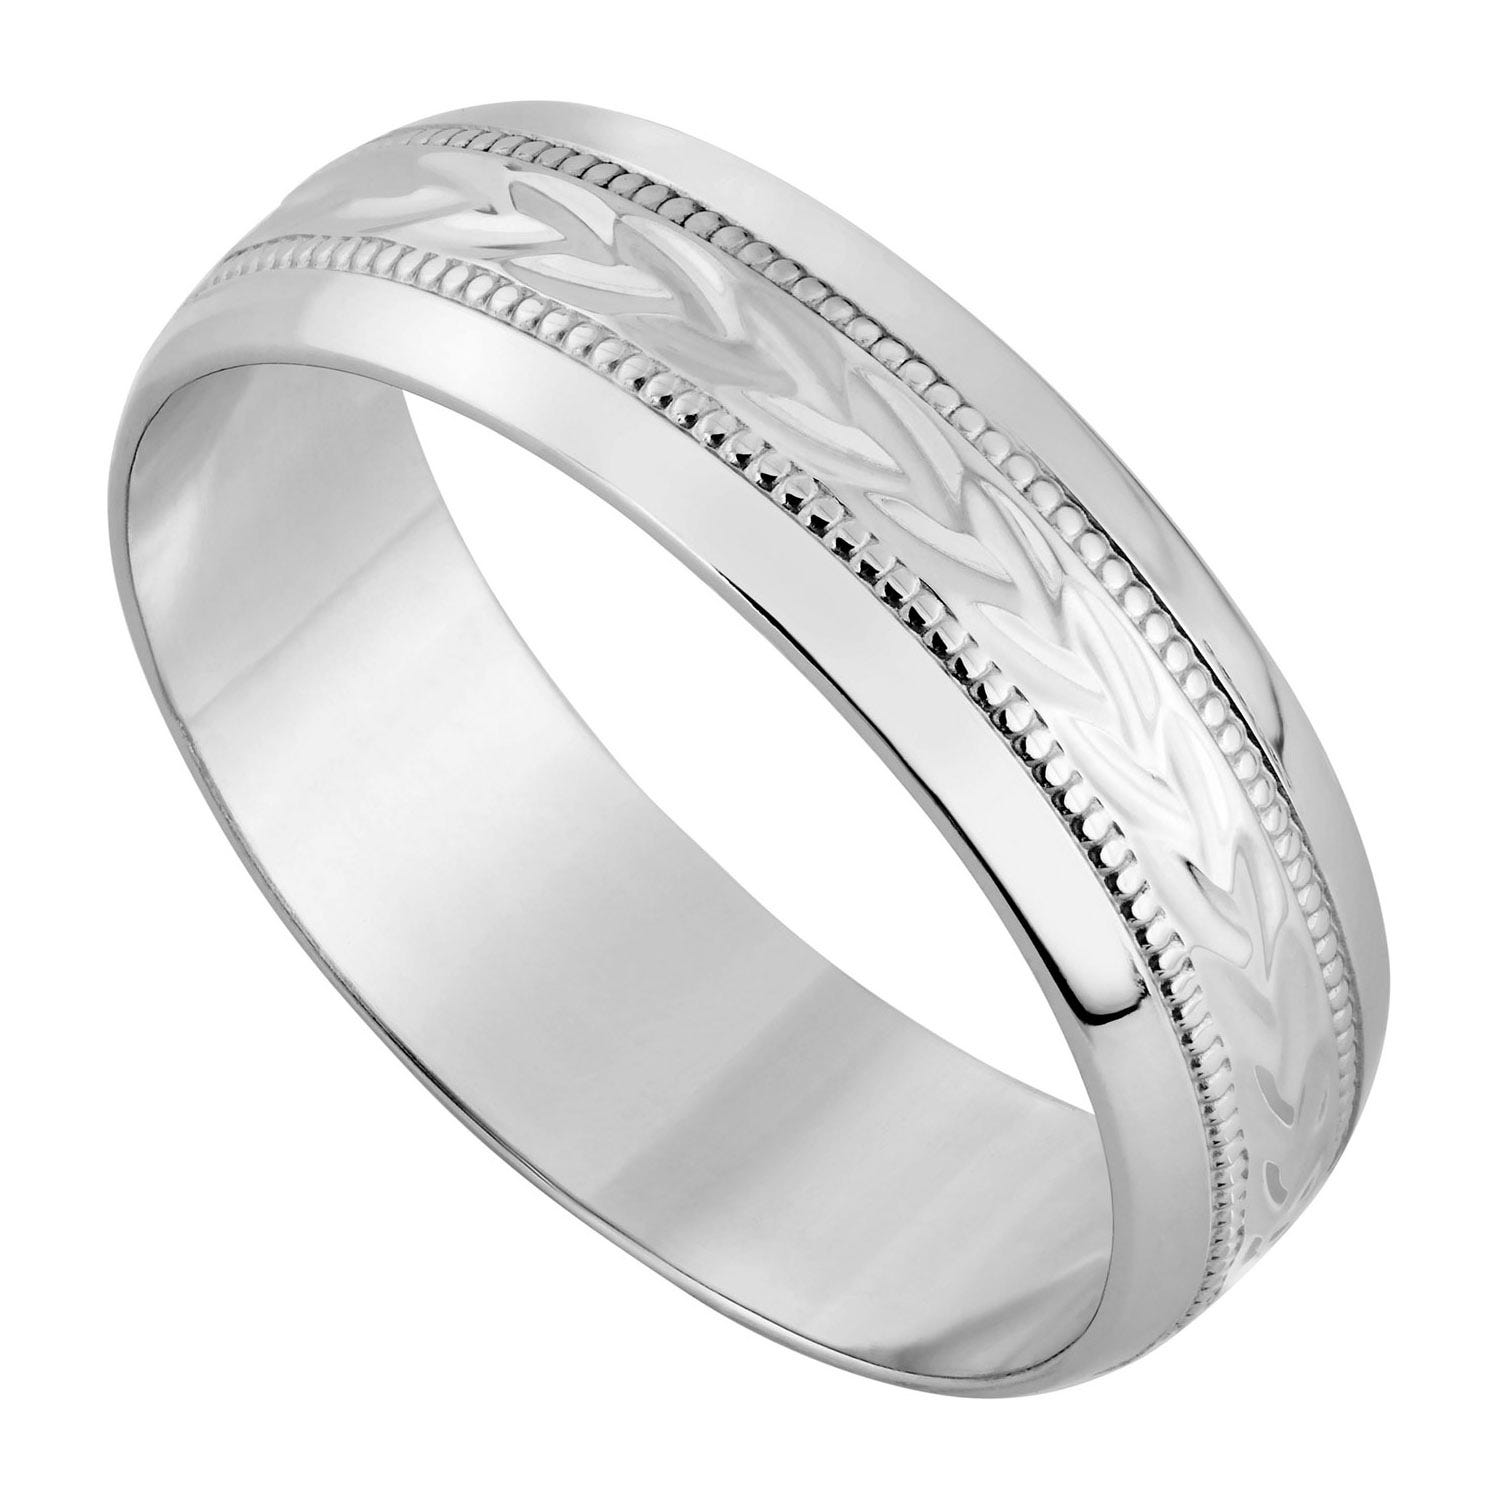 9ct white gold 5mm D-shaped wedding ring